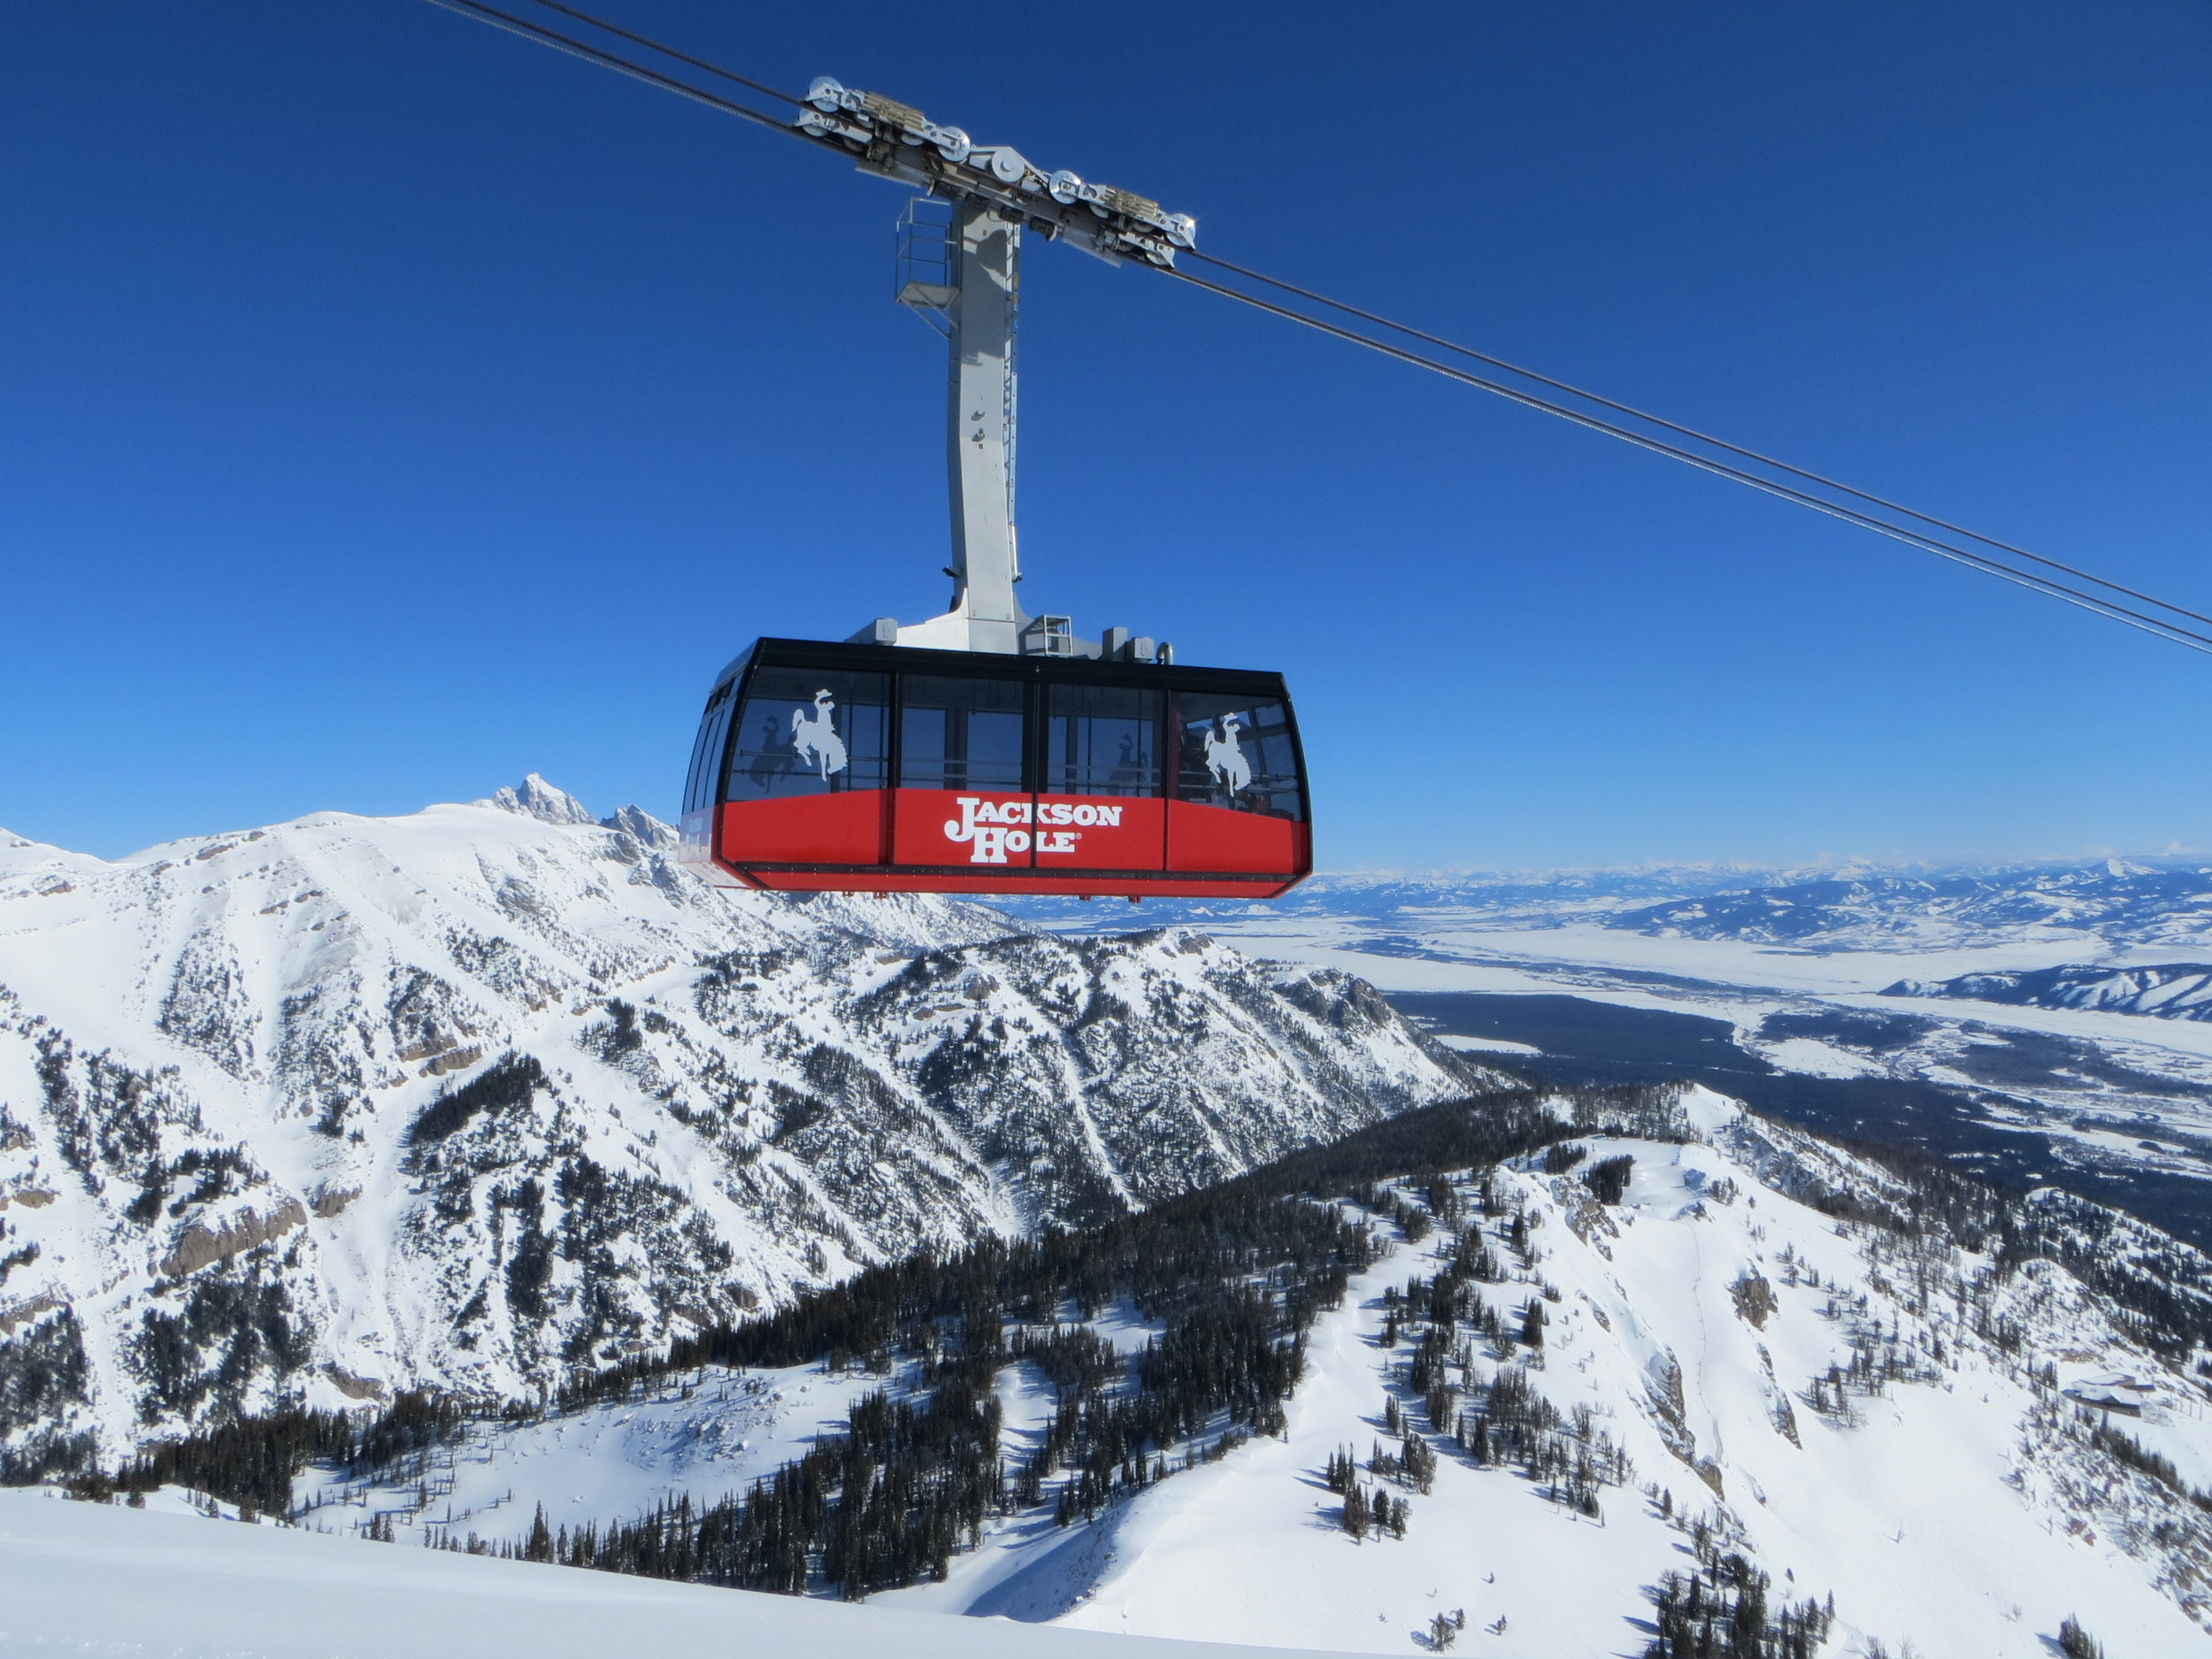 Jan 22 | Ski Jackson Hole - 3 days skiing/boarding at our favorite mountain has us psyched for winter to begin.